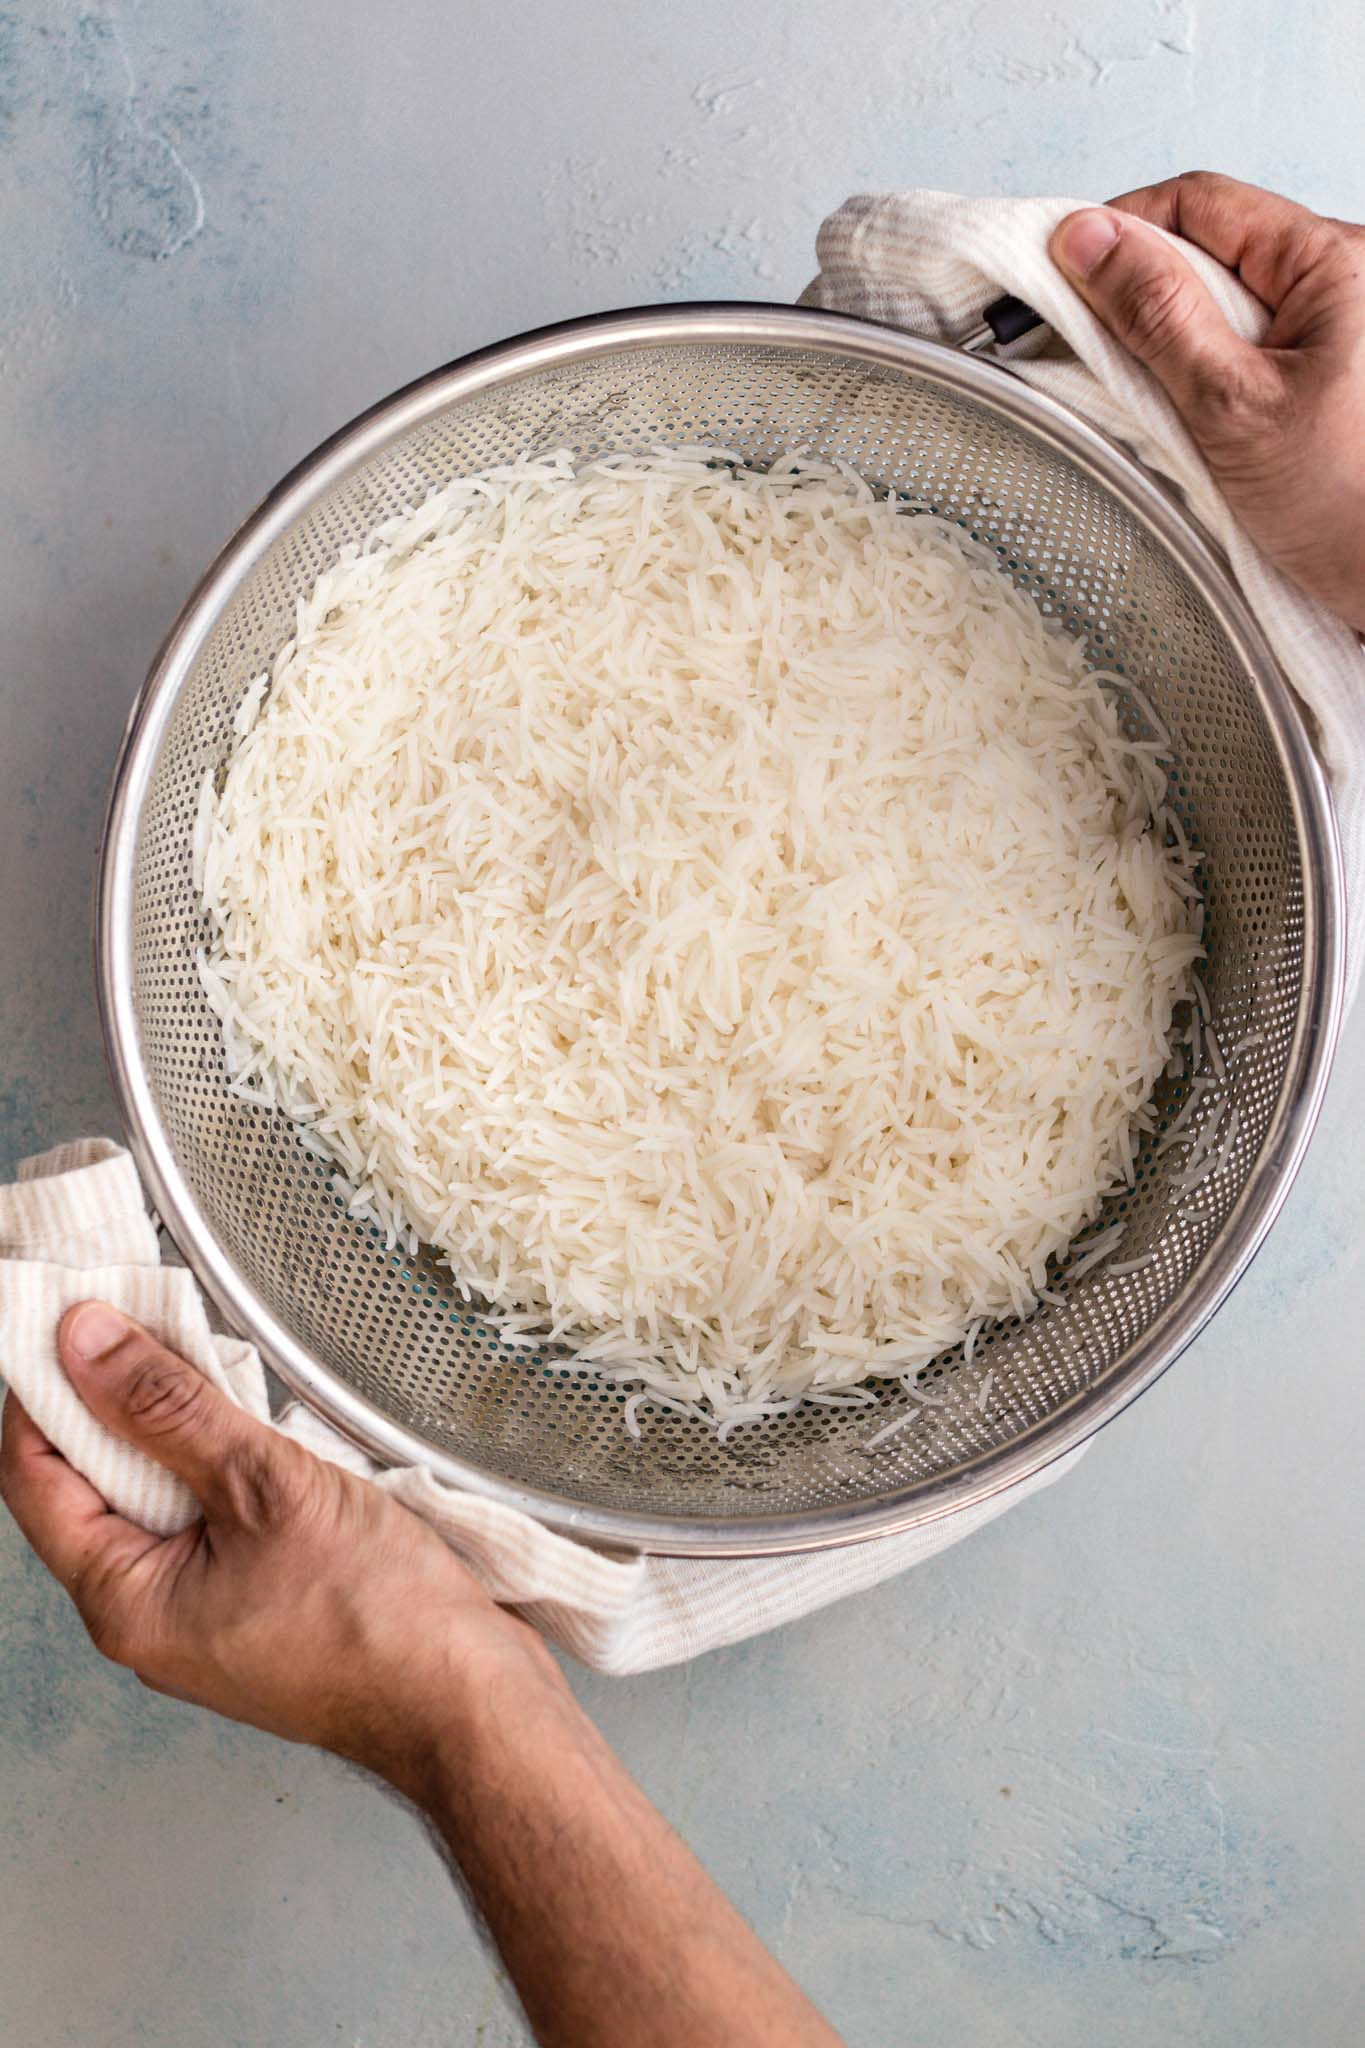 Holding par-boiled rice for biryani on a colander or sieve